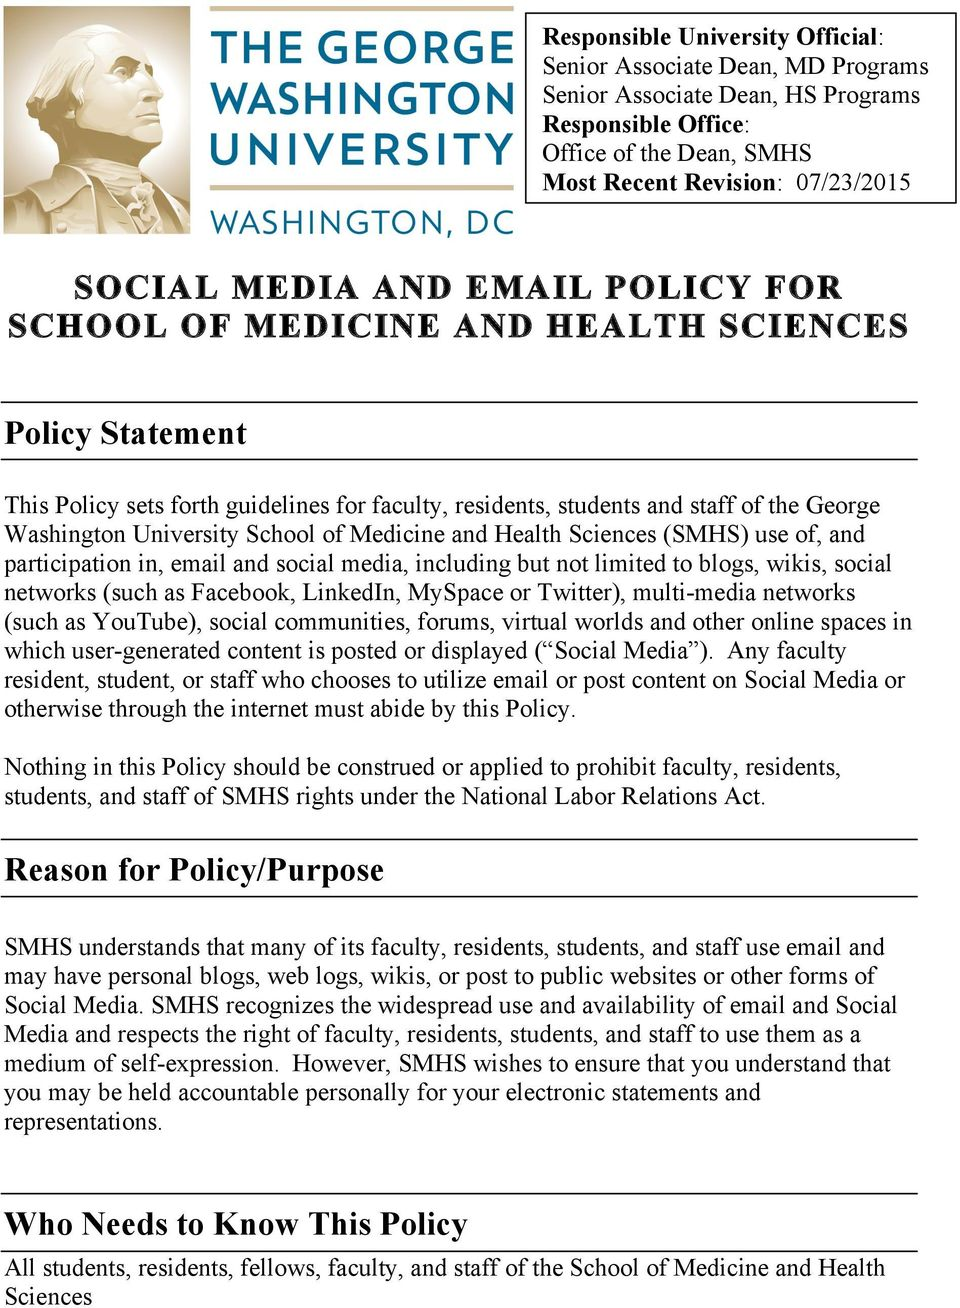 Medicine and Health Sciences (SMHS) use of, and participation in, email and social media, including but not limited to blogs, wikis, social networks (such as Facebook, LinkedIn, MySpace or Twitter),